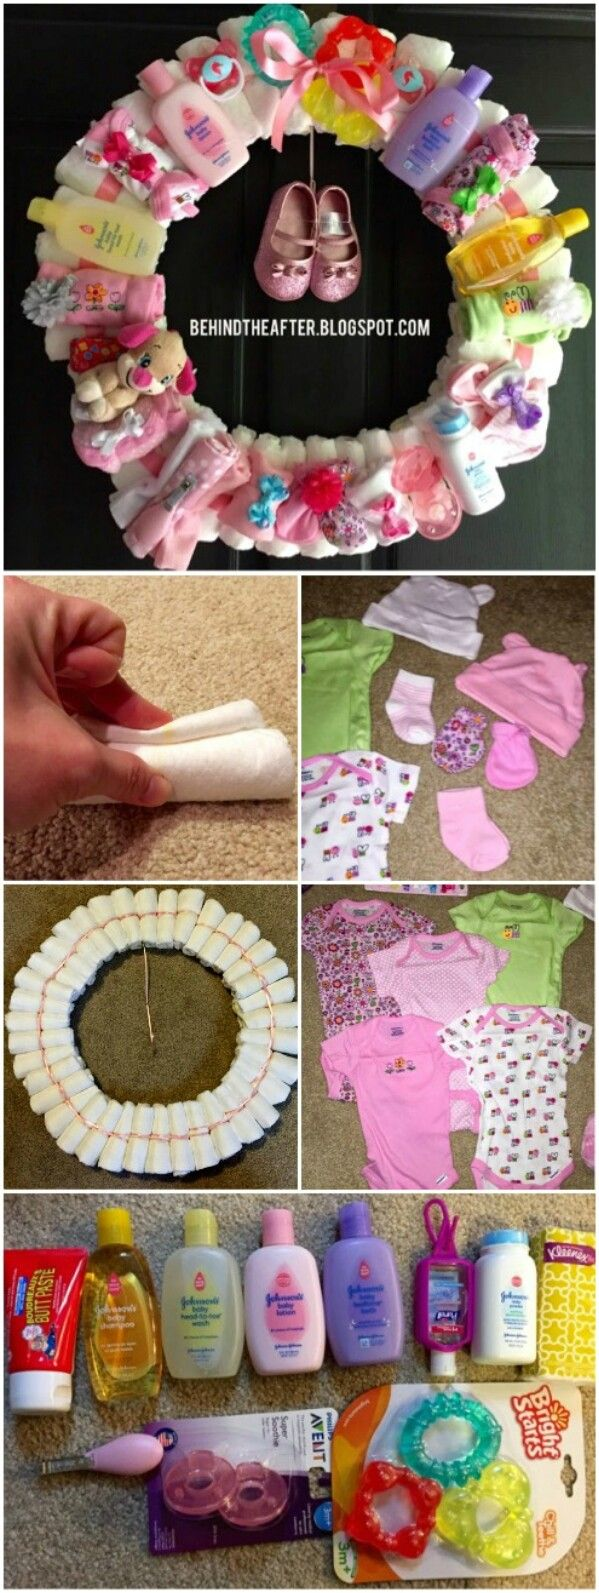 25 enchantingly adorable baby shower gift ideas that will make you diaper wreath solutioingenieria Image collections